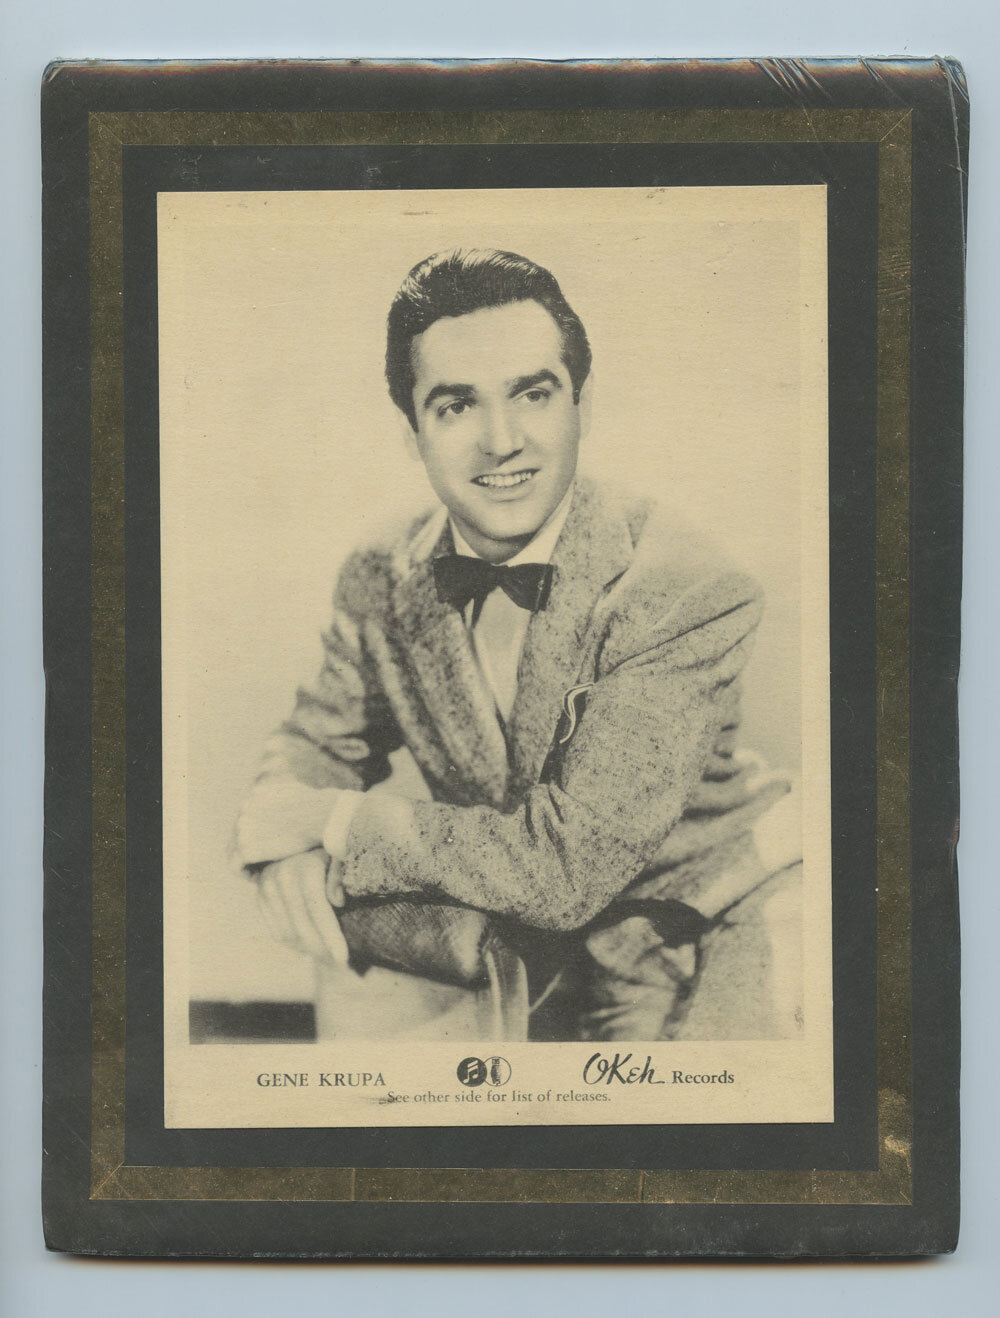 Gene Krupa Photo 1940 New Single Promo OKEH Records